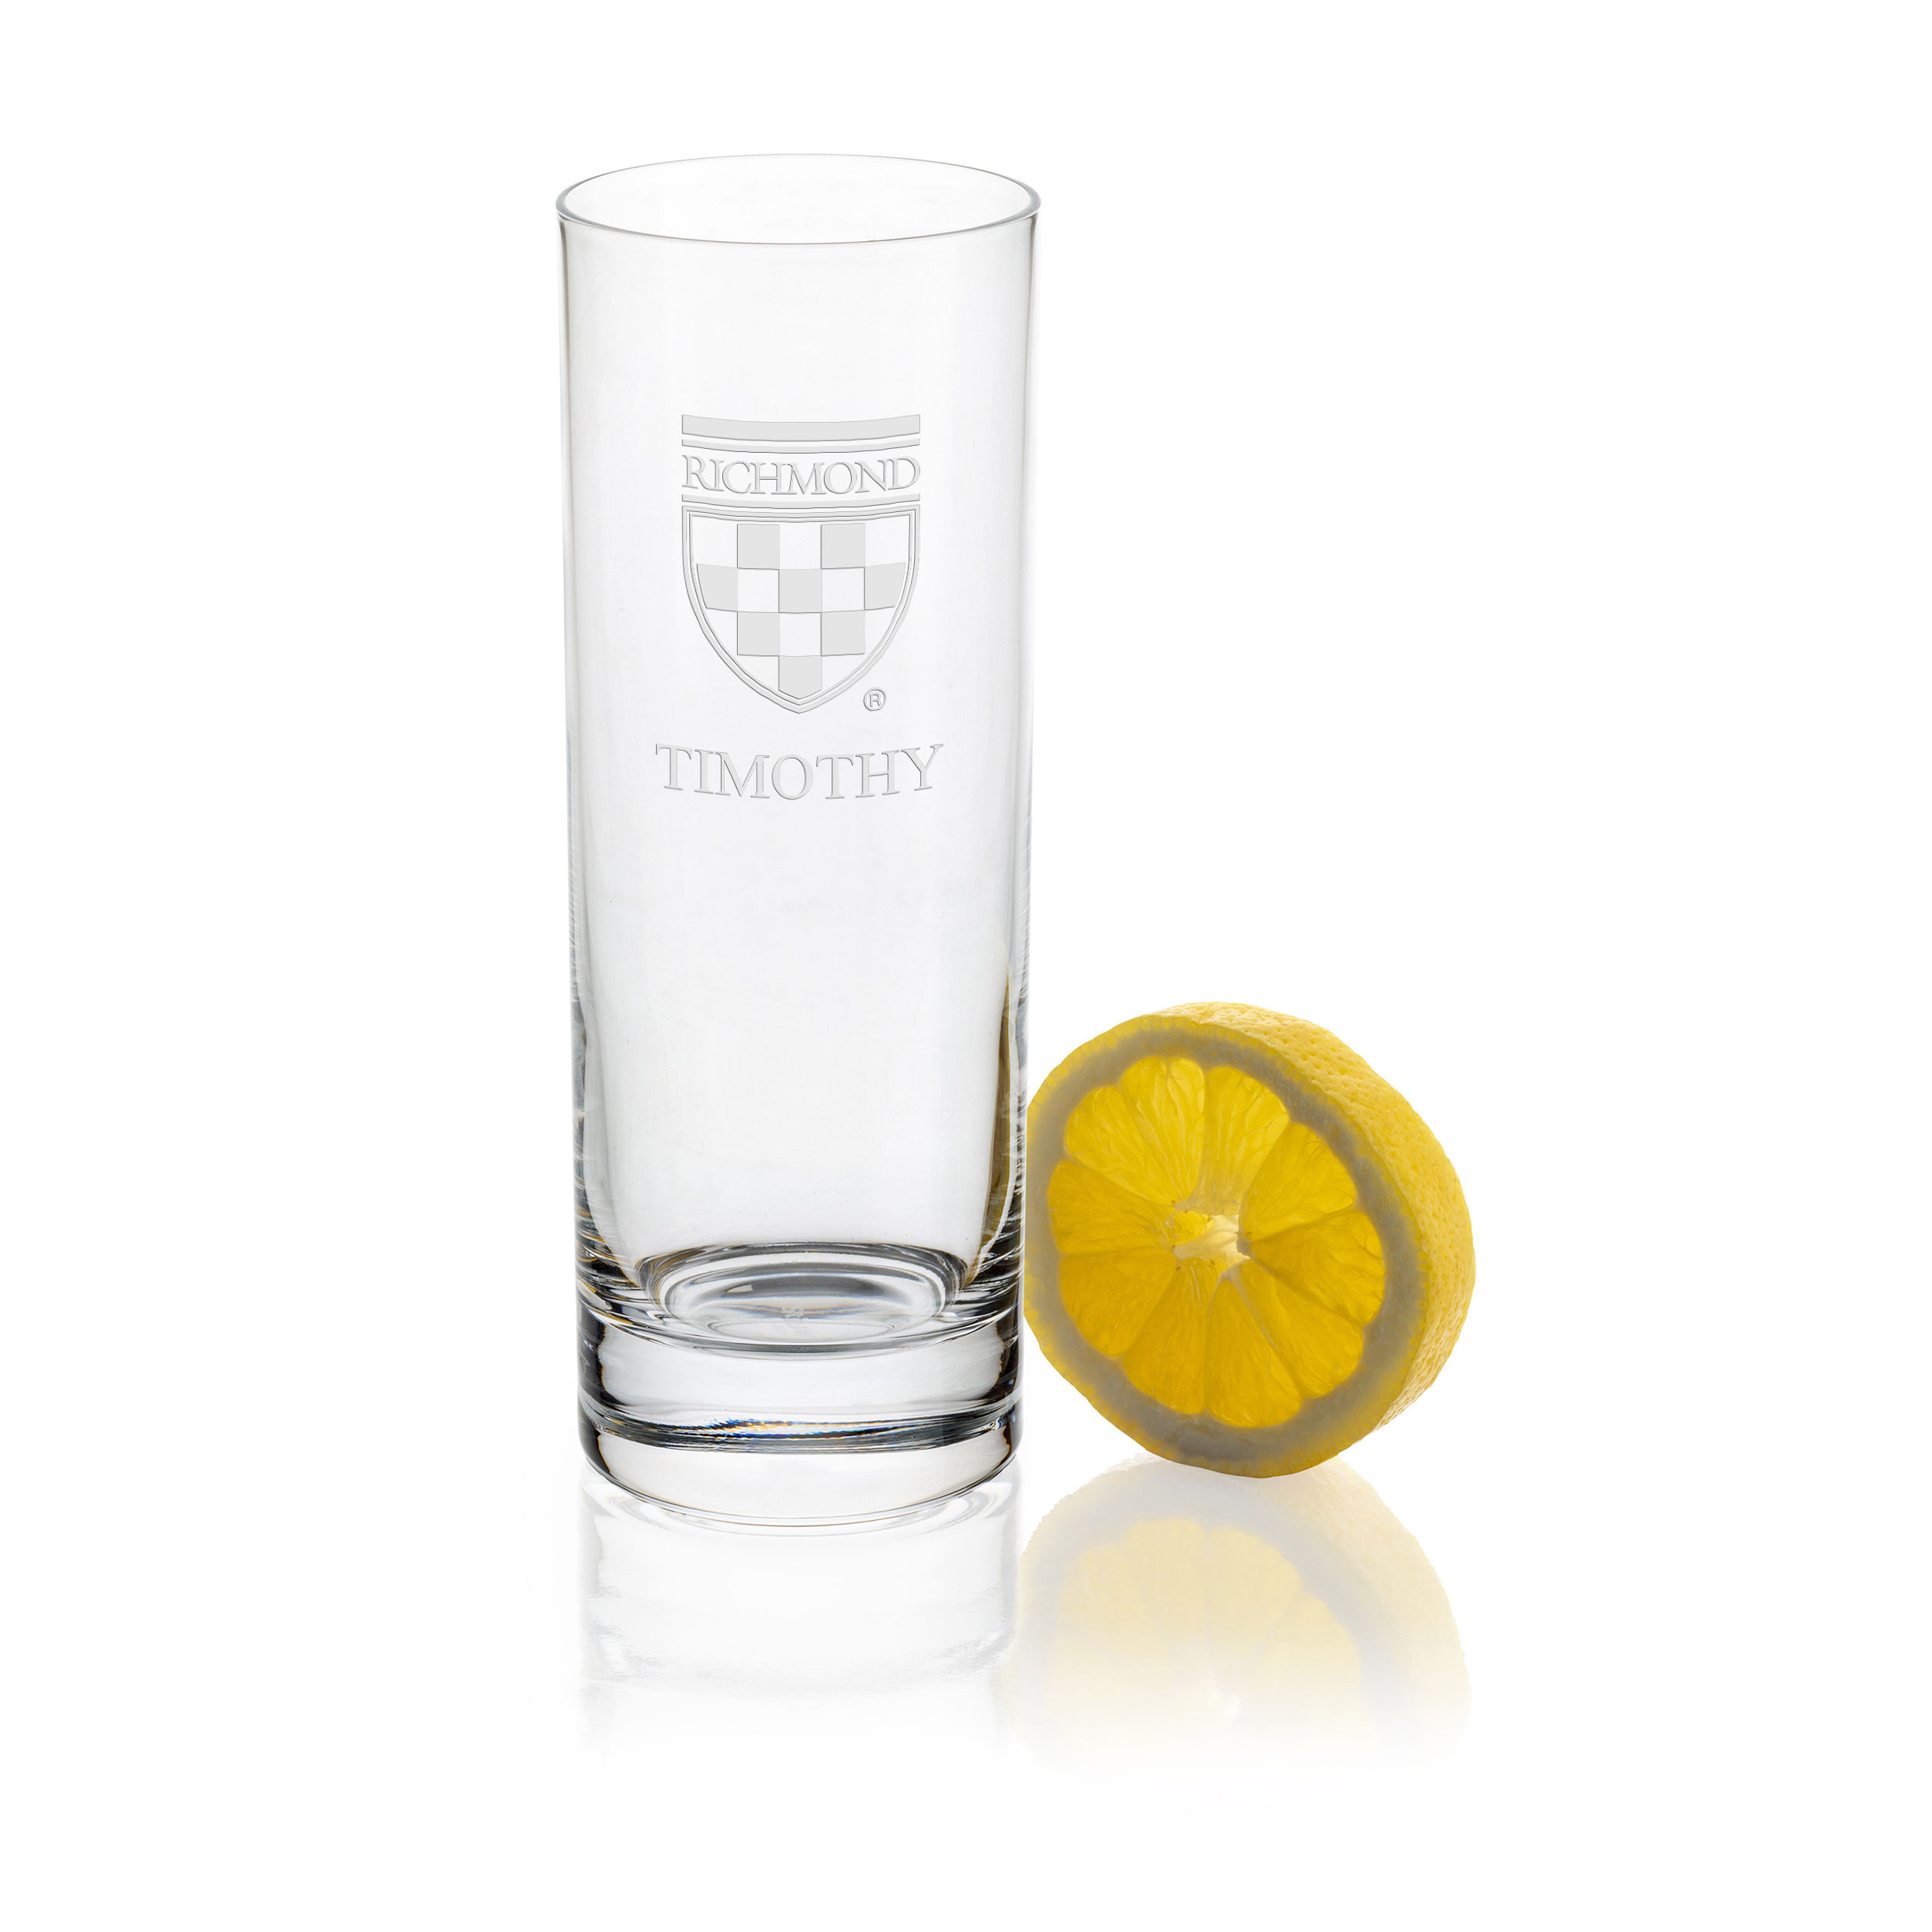 University of Richmond Iced Beverage Glasses - Set of 4 - Image 1